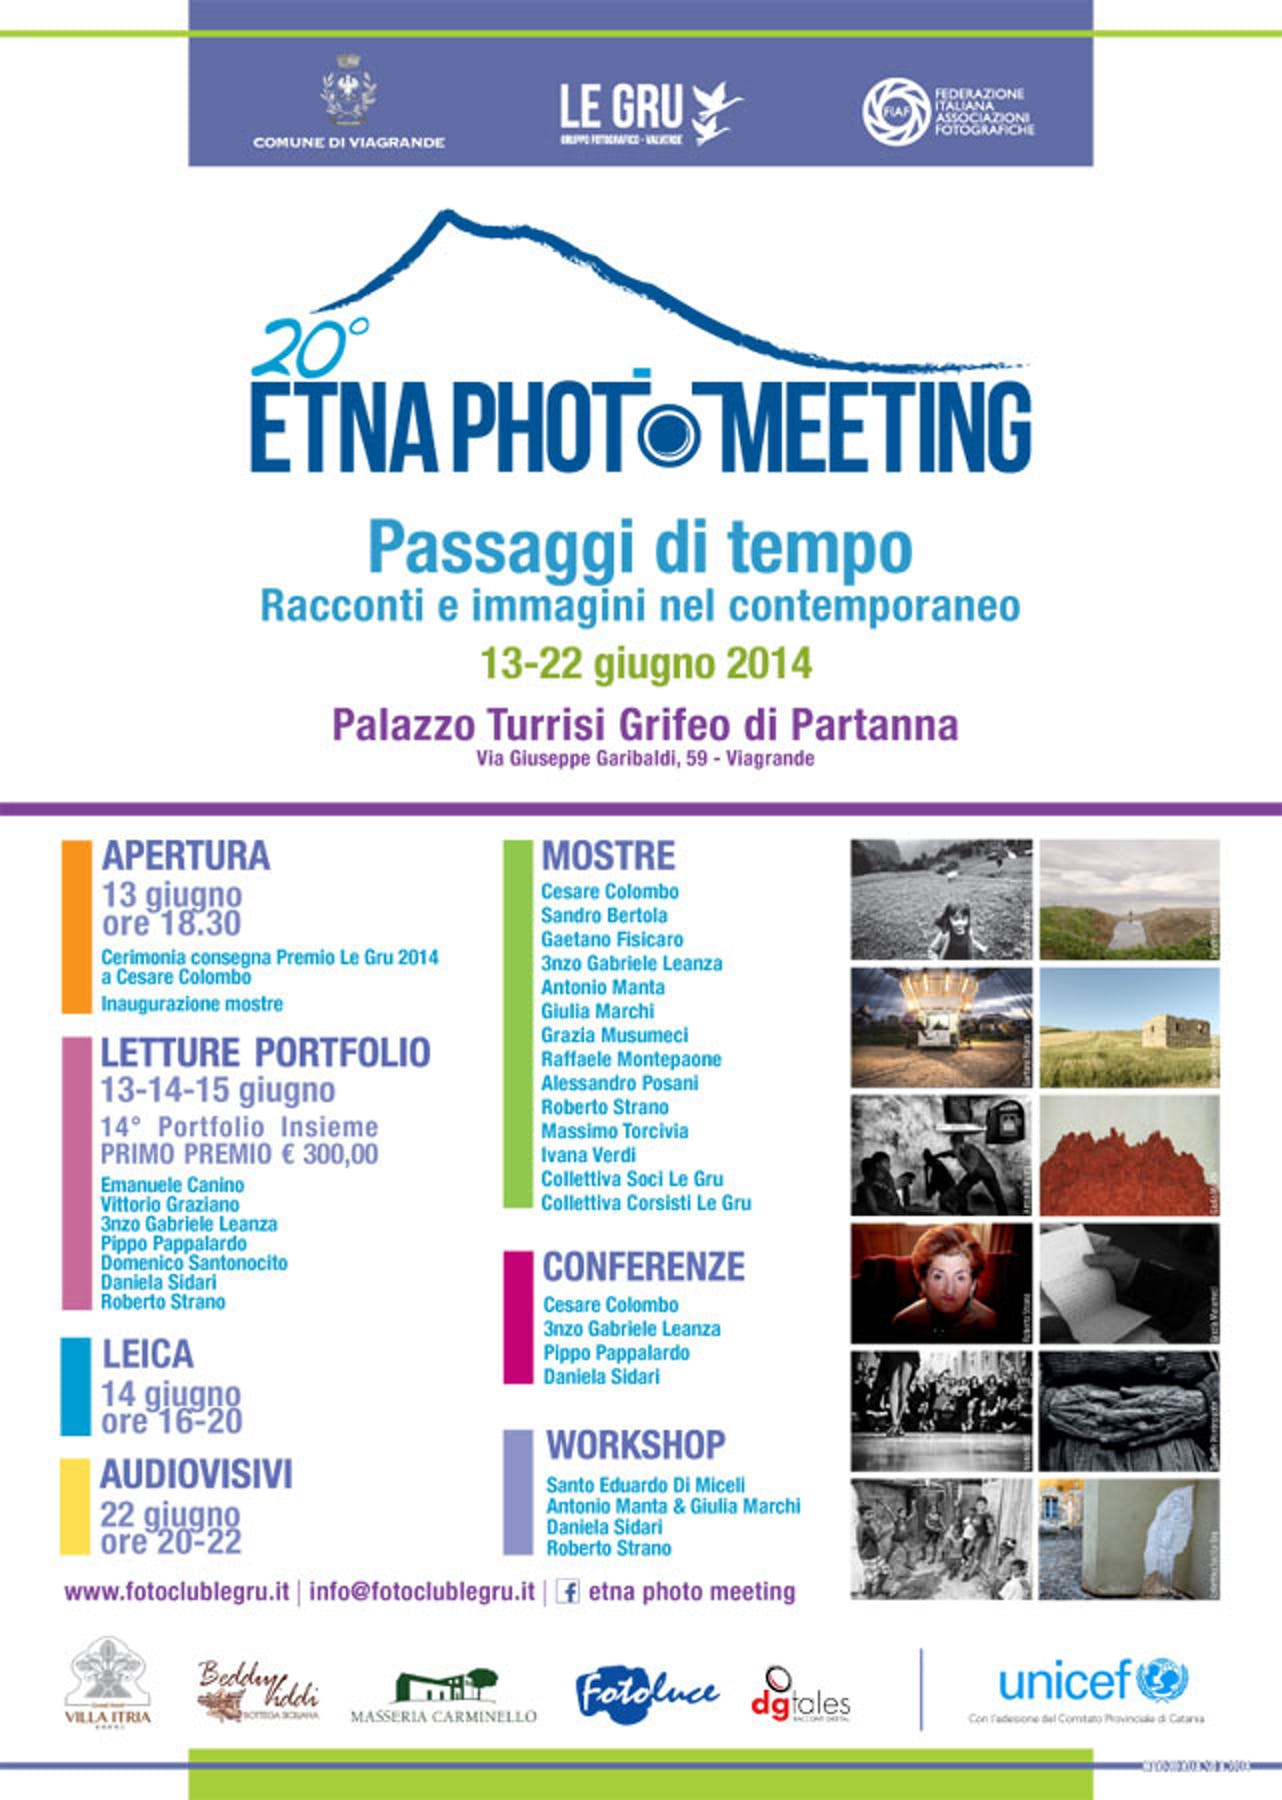 Catania: l'UNICEF aderisce all'Etna Photo Meeting